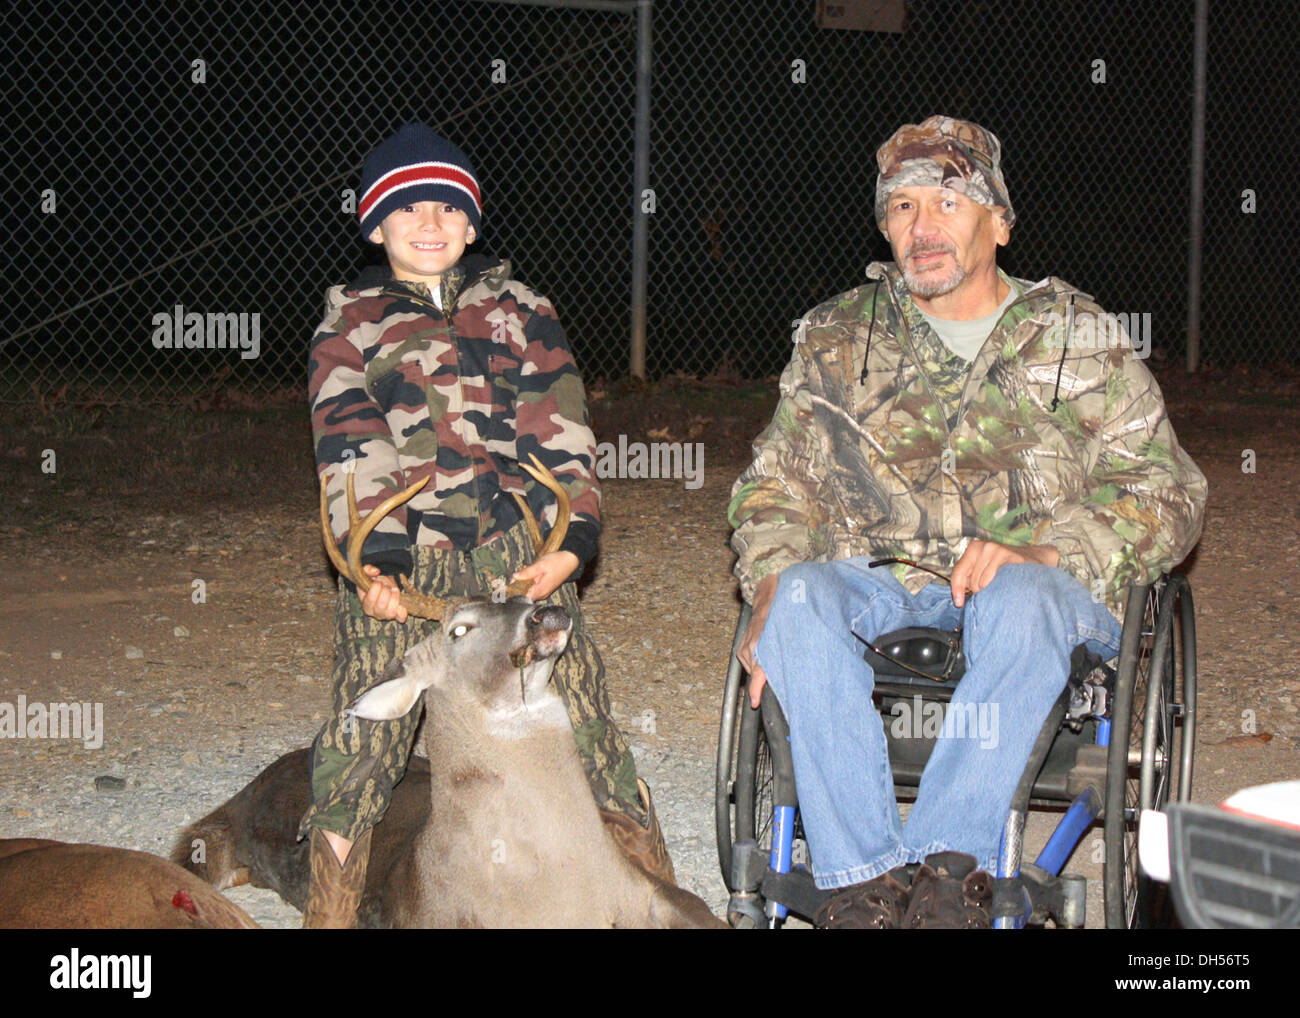 Paralyzed Veterans of America (PVA) member Ricky Pless and his grandson Landon pose with a deer that Ricky harvested Oct. 23 at - Stock Image